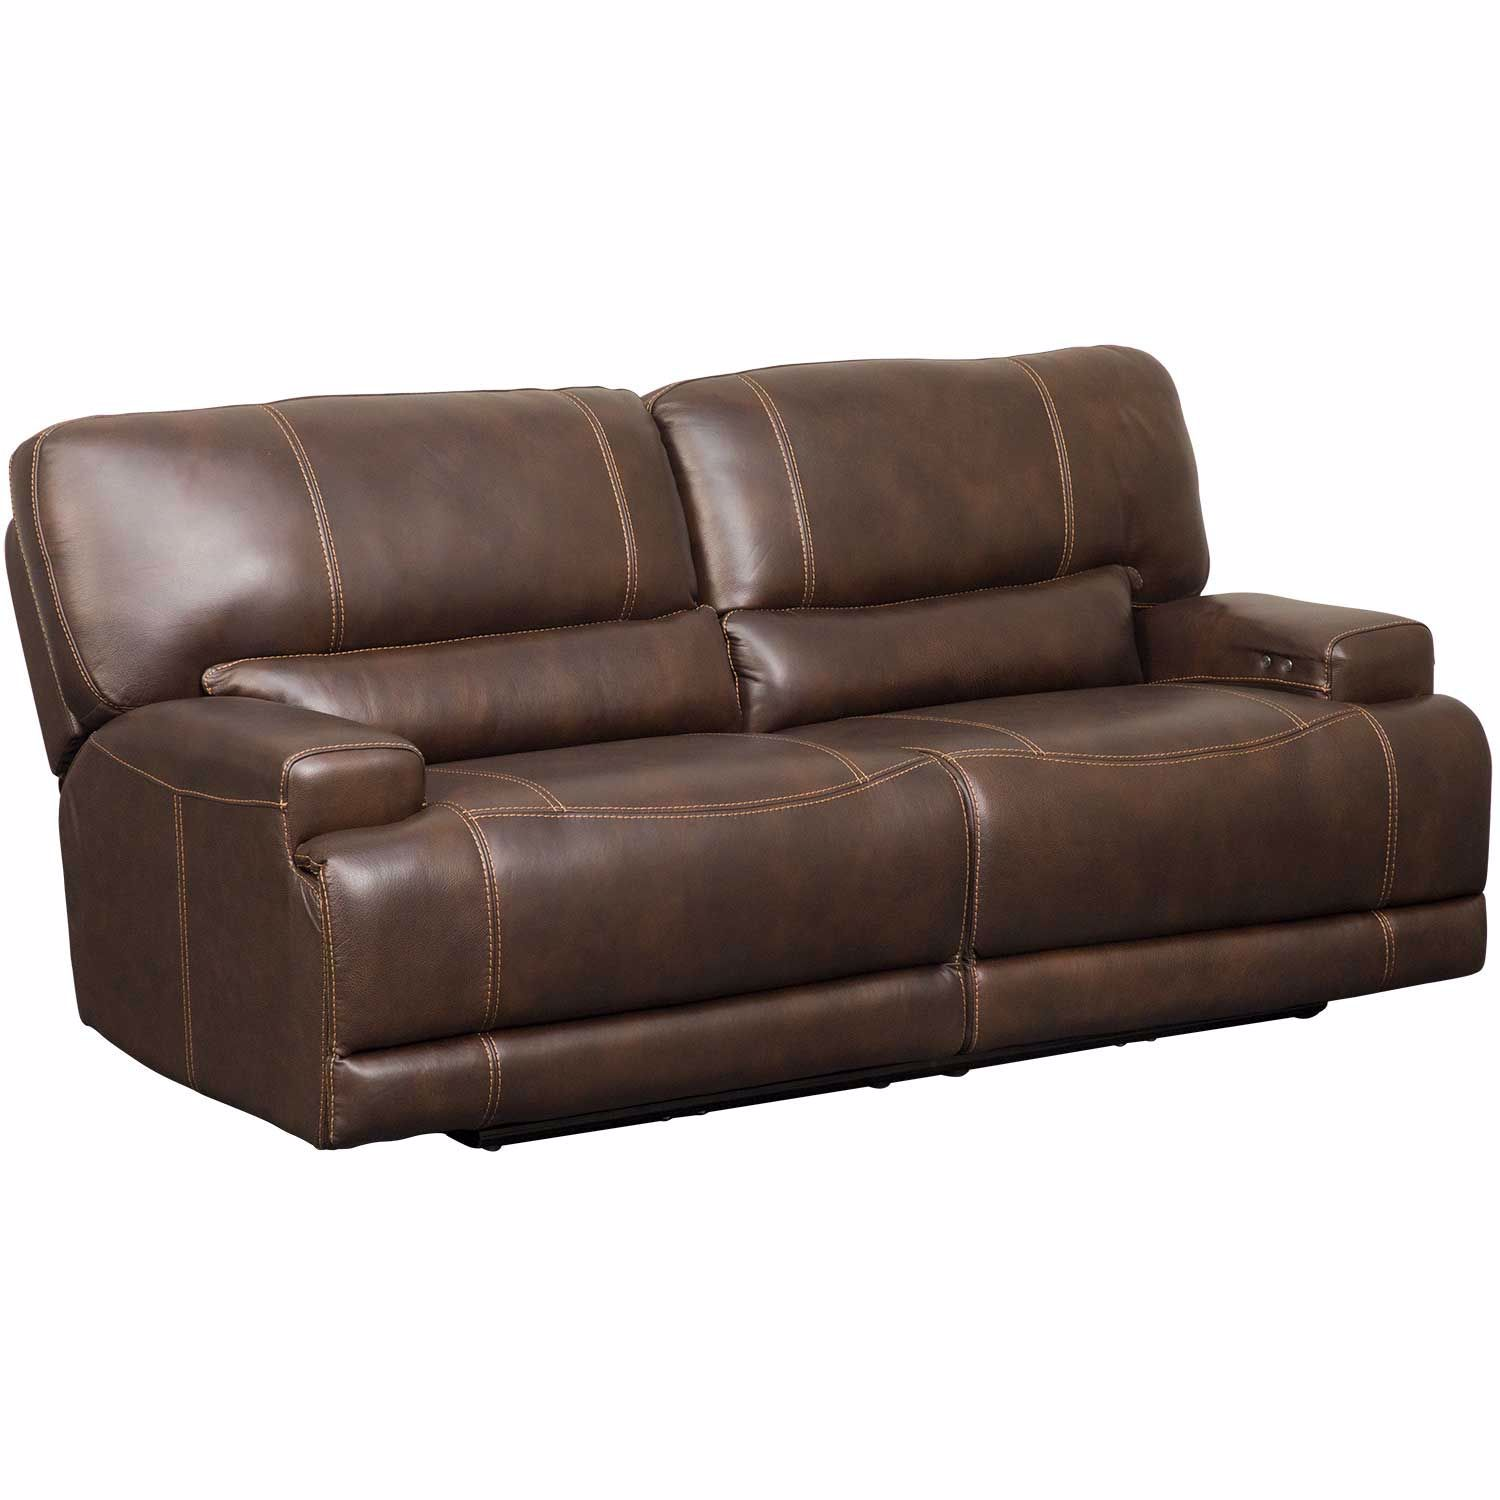 Picture of Jax Brown Leather Power Recline Sofa